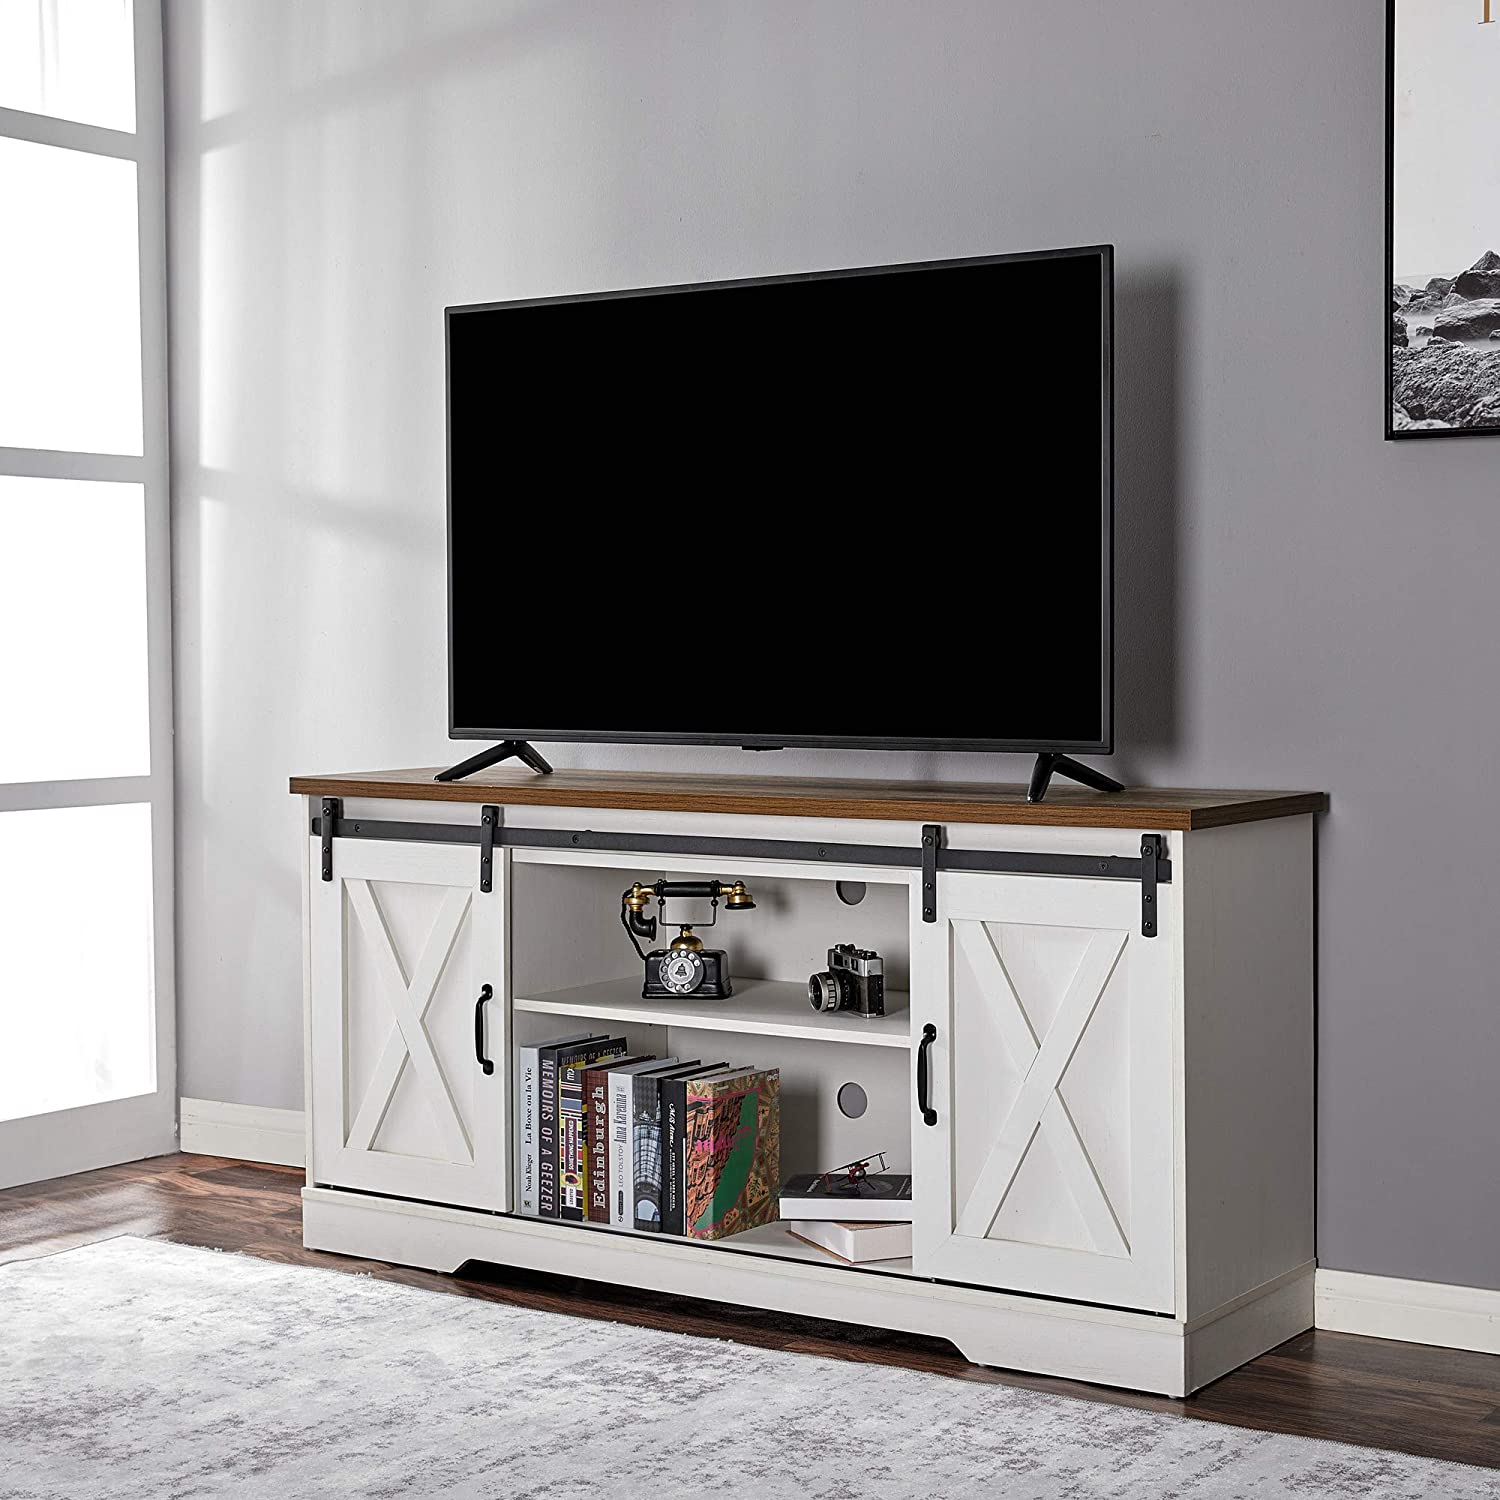 Amerlife TV Stand Sliding Barn Door Modern&Farmhouse Wood Entertainment Center, Storage Cabinet Table Living Room with Adjustable Shelves for TVs Up to 65